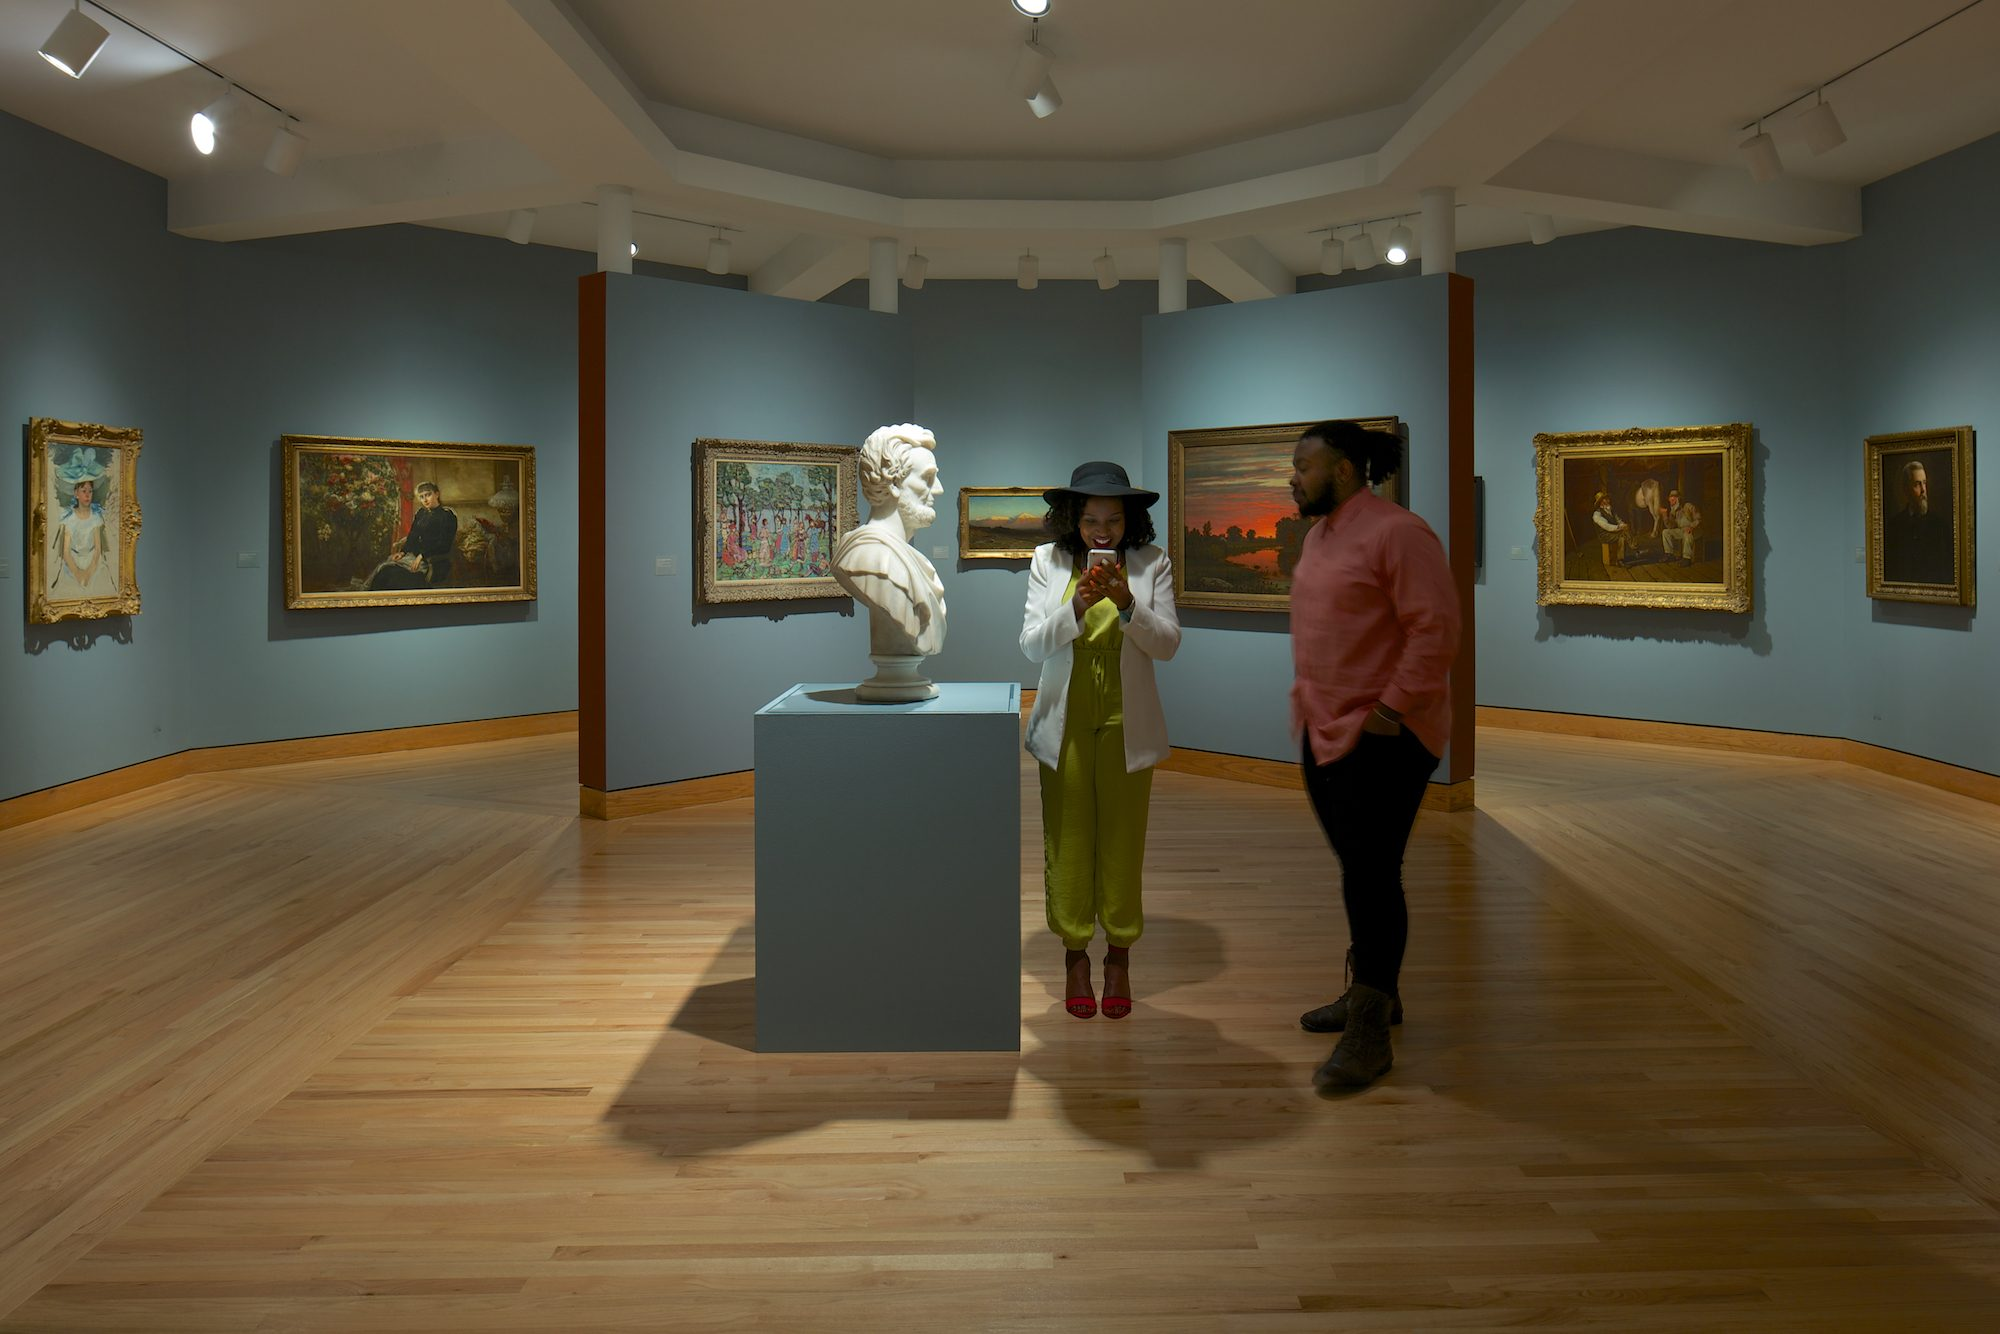 Installation view of Three Centuries of American Art